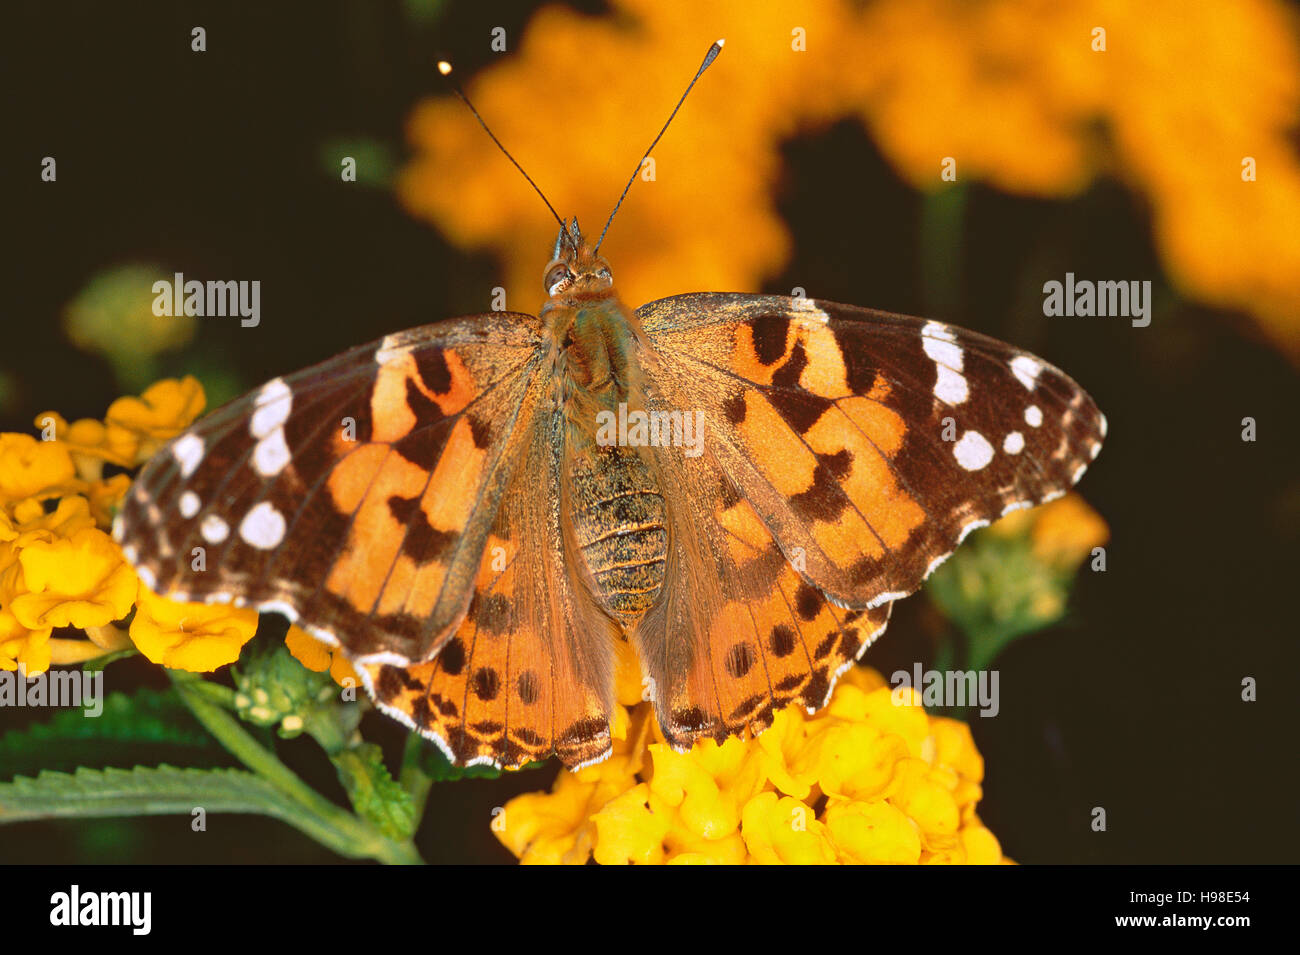 Painted lady butterfly (Cynthia cardui) on a lantana flower Stock Photo